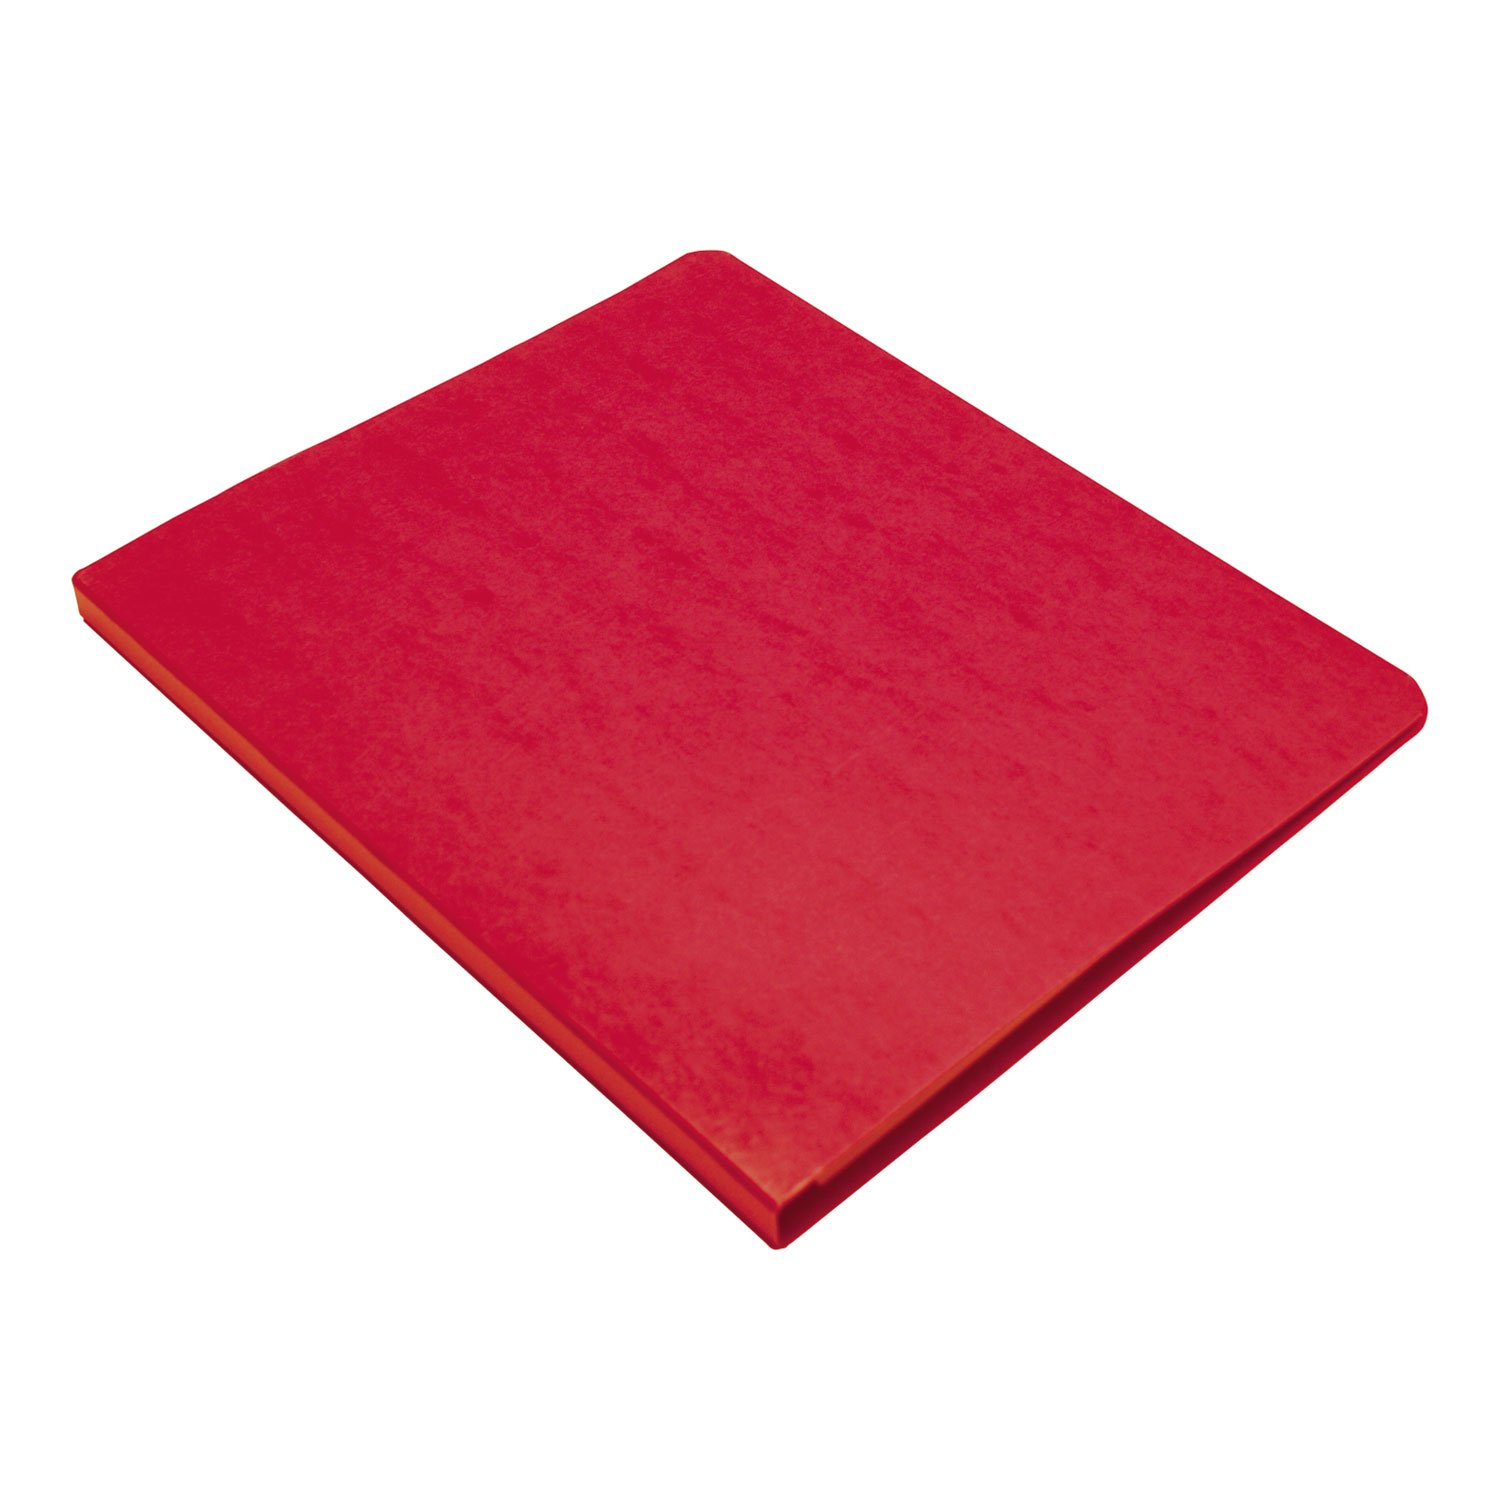 Acco Presstex Side Bound Grip Binder - Letter - 8.5amp;quot; x 11amp;quot; - 125 Sheet - 0.62amp;quot; Capacity - 1 Each - Executive Red